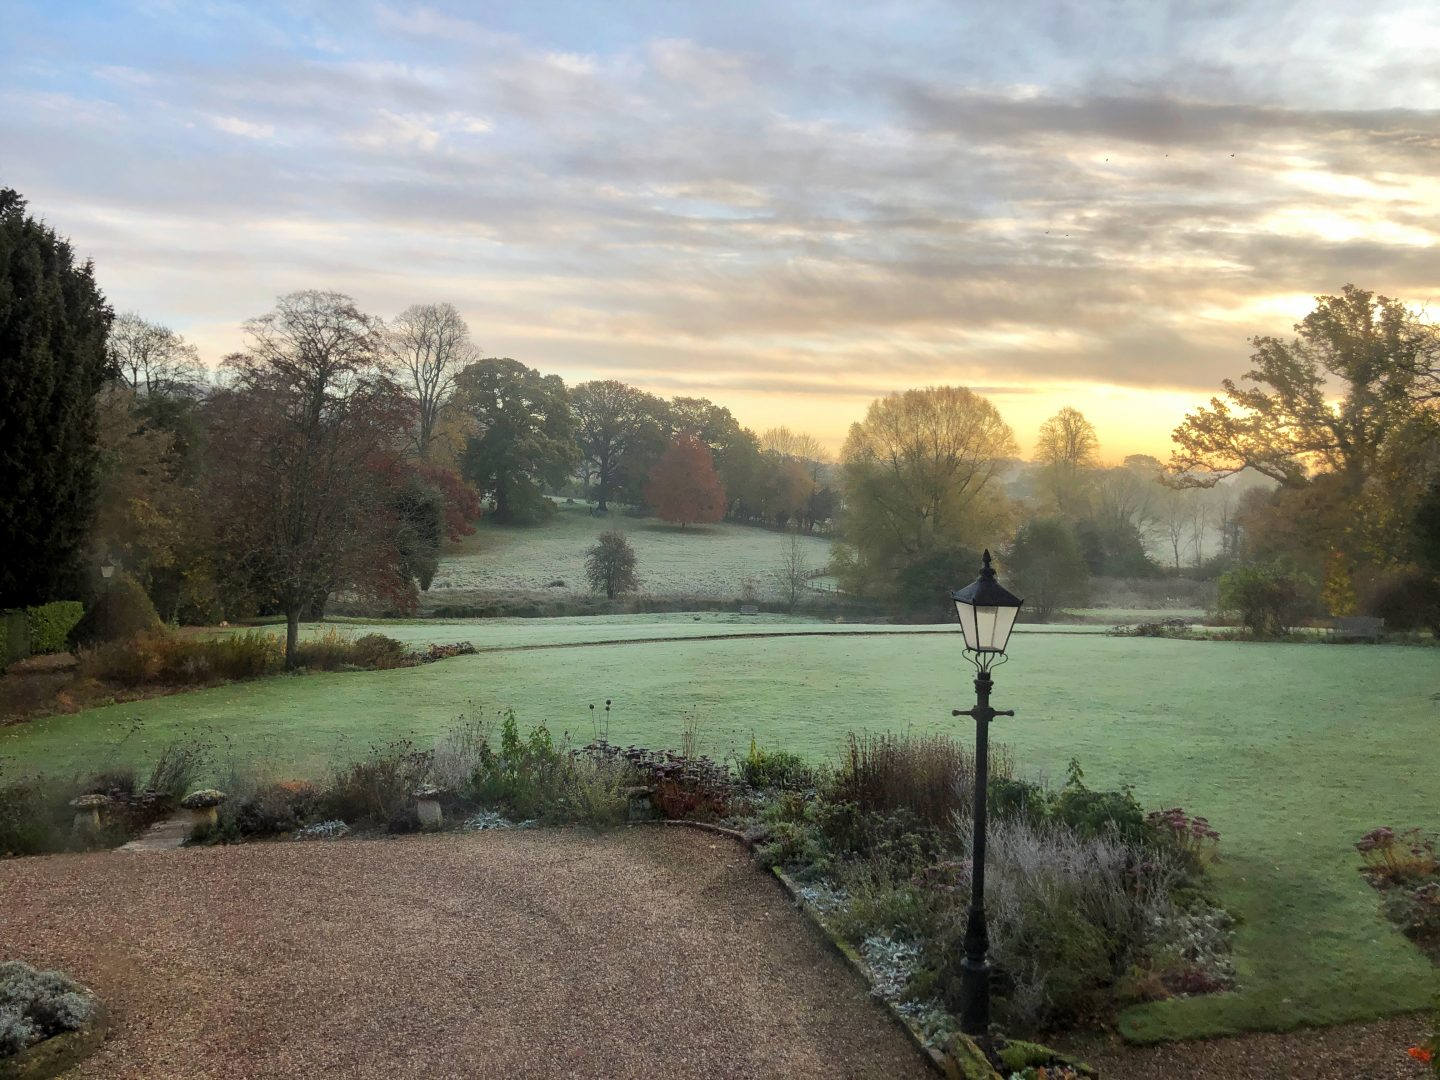 A view across the garden from our bedroom window at the Lords of the Manor hotel. The dawn light is golden and the ground is frosty.